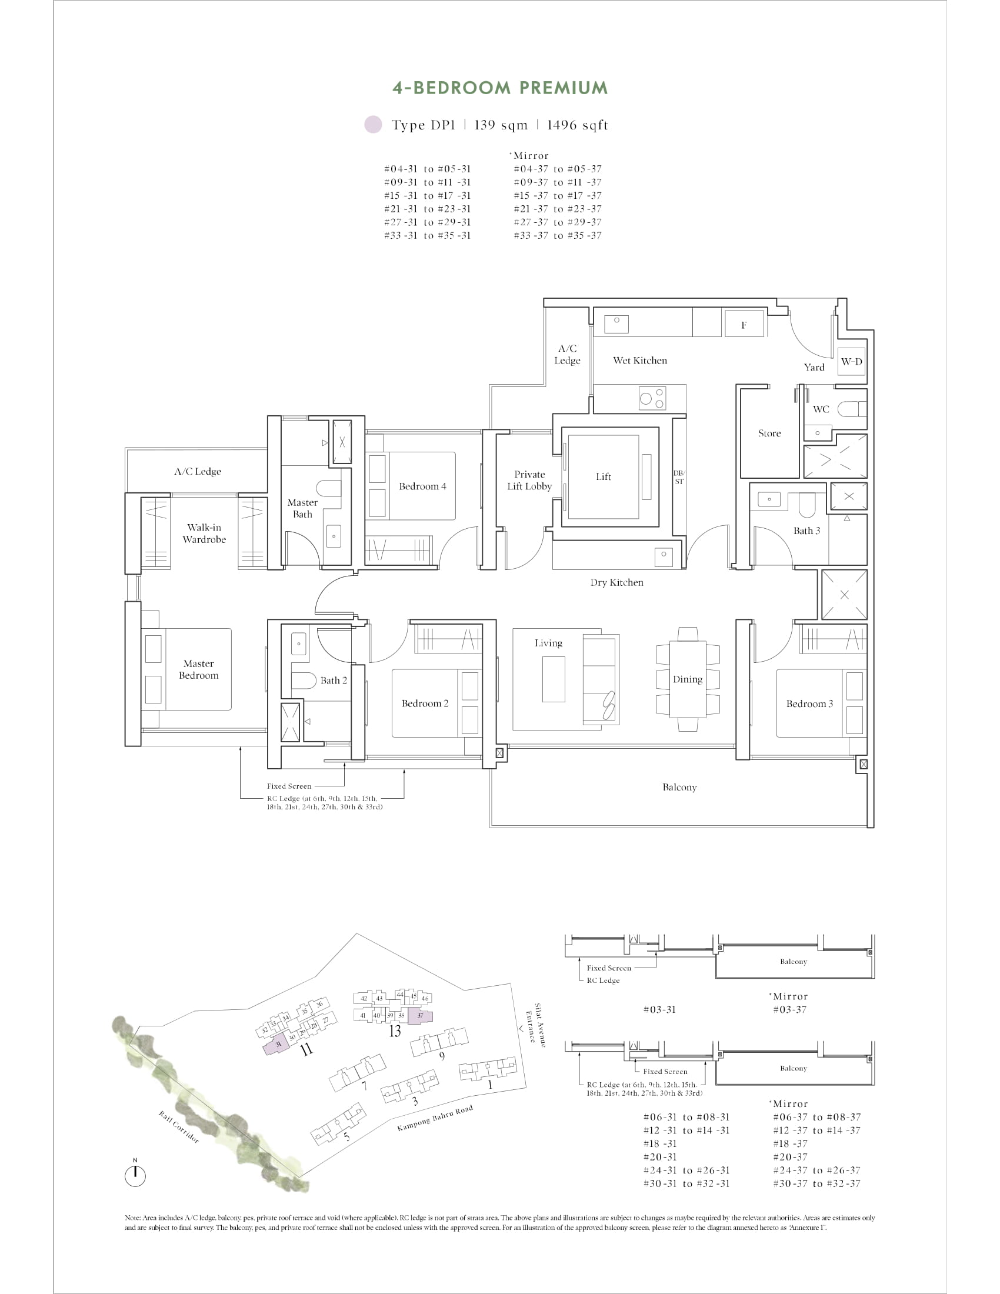 Site And Floor Plan Avenue South Residence Official Website Bernard Koh Sustainable Building Design Environmental Management System Site Plan